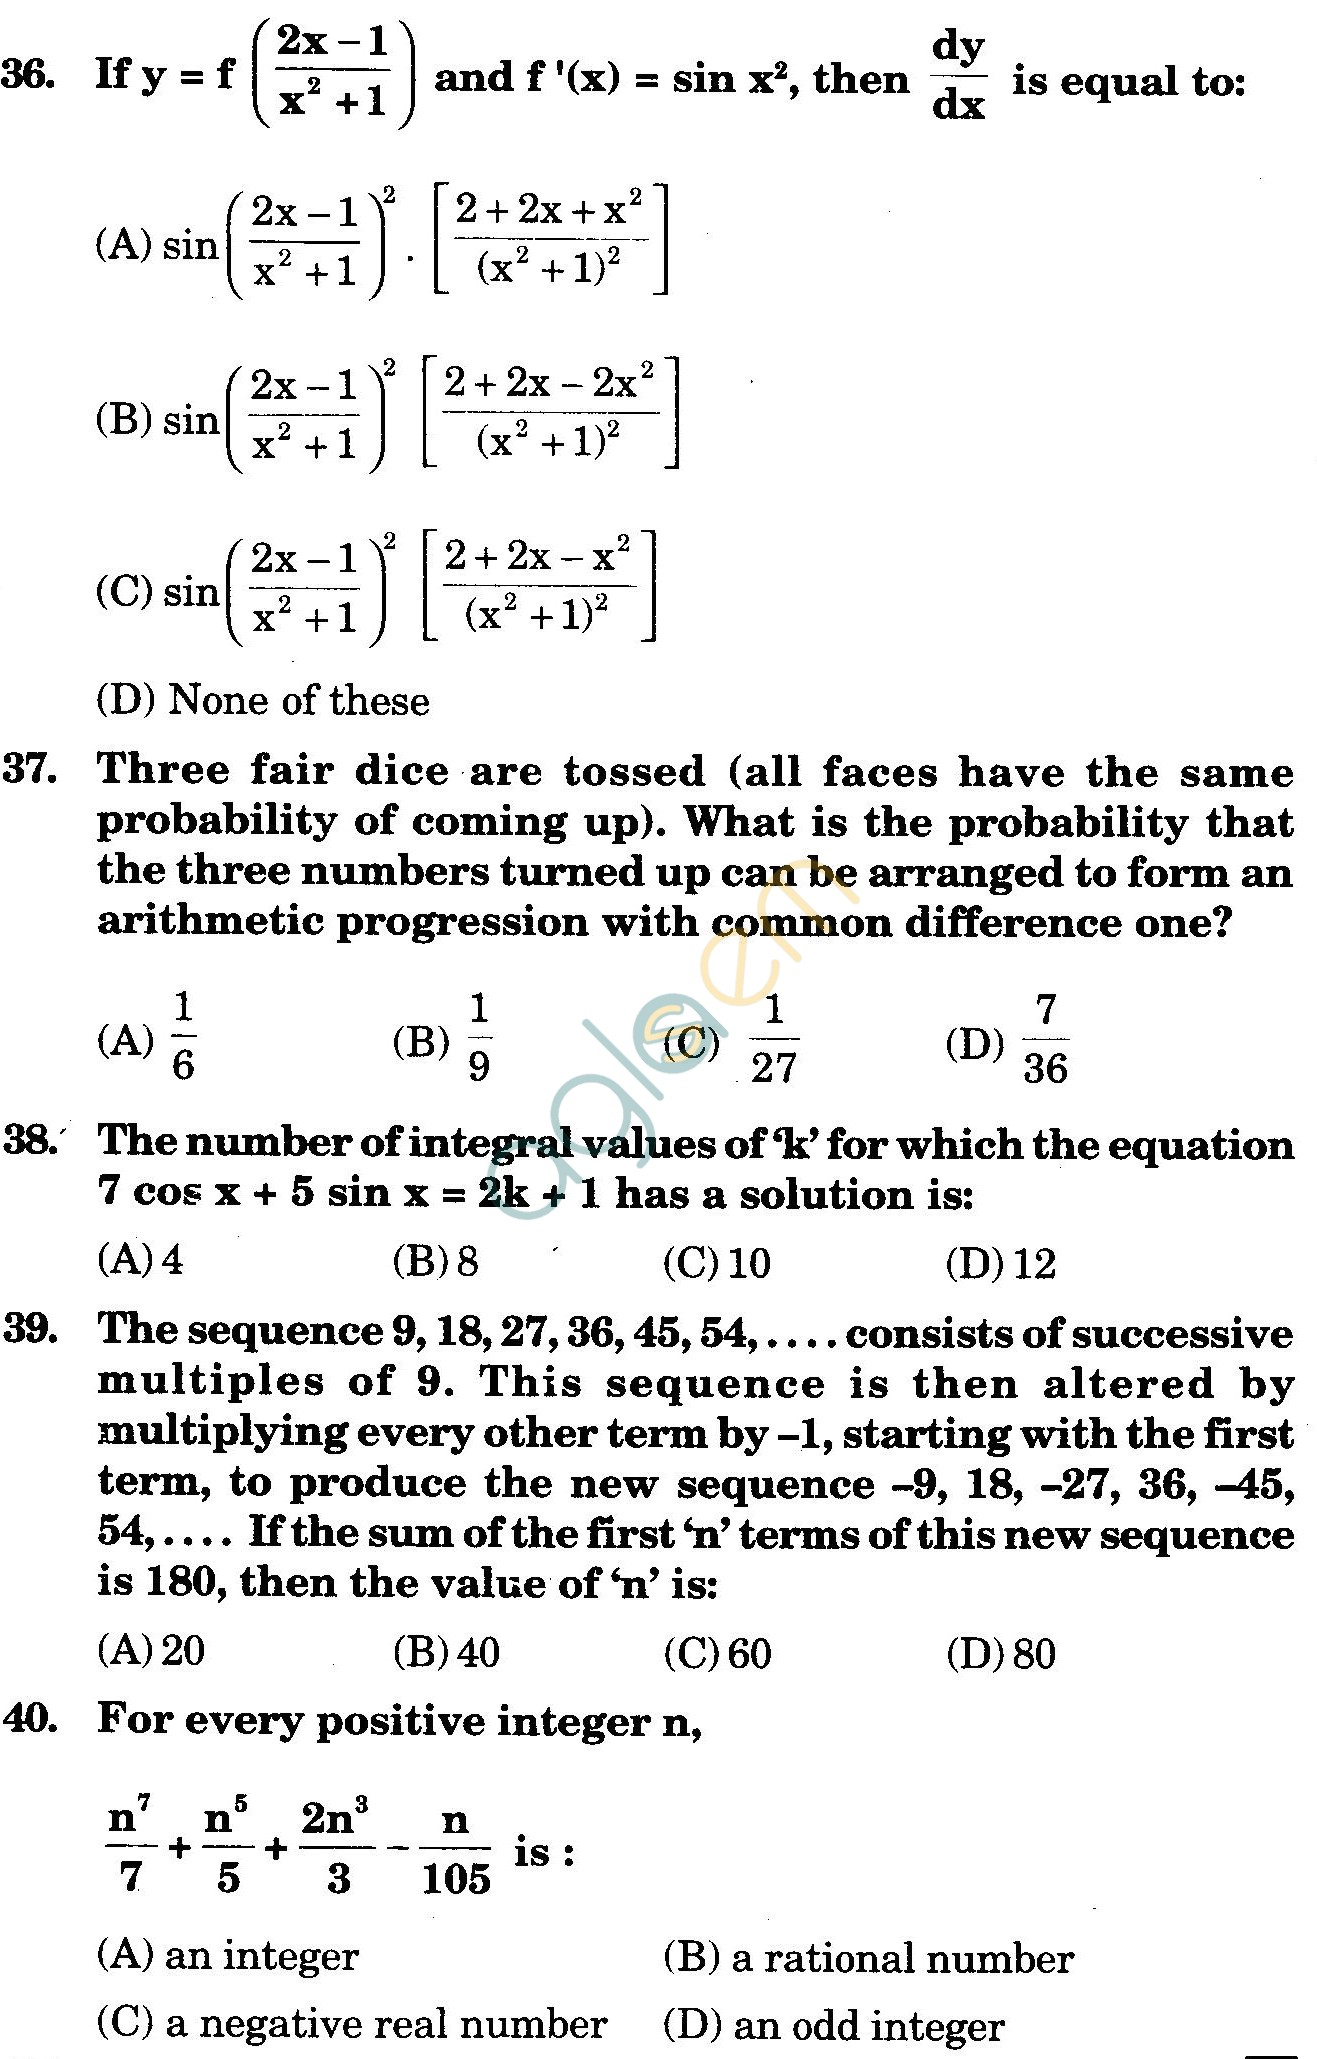 NSTSE 2010 Class XI PCM Question Paper with Answers - Mathematics